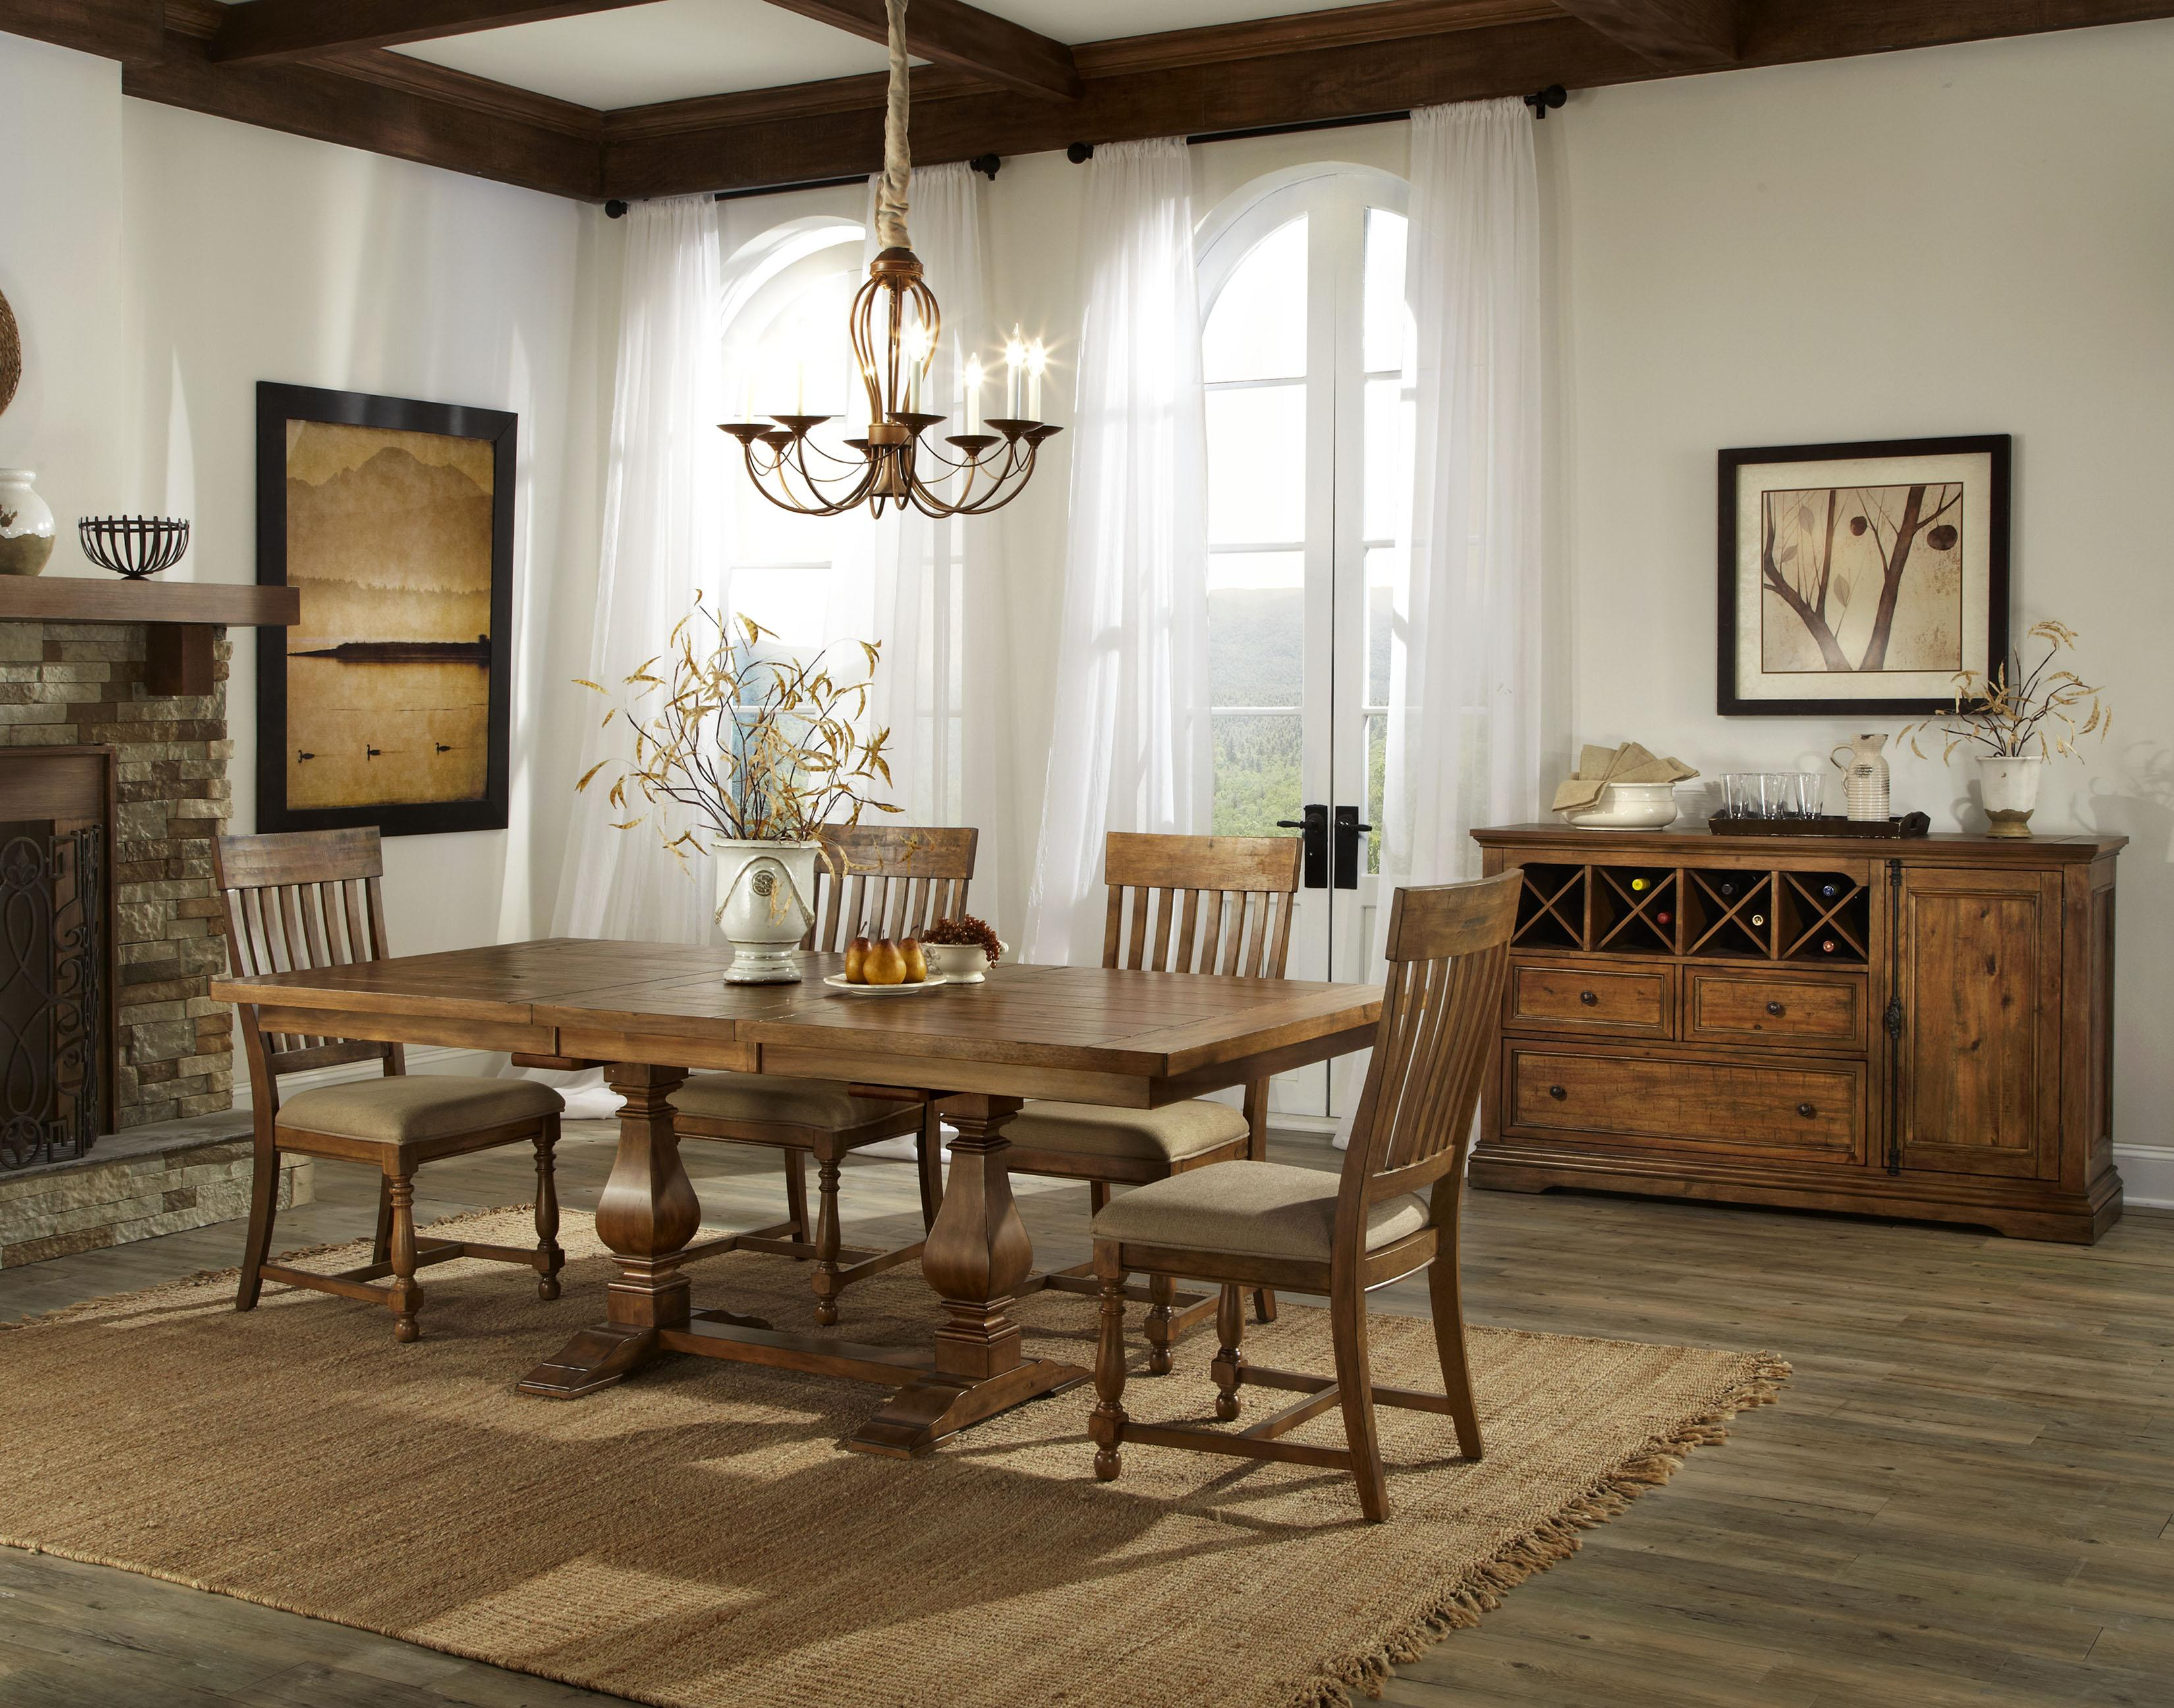 Rhone Dining Table and Chair Set with 4 Slat Back Chairs